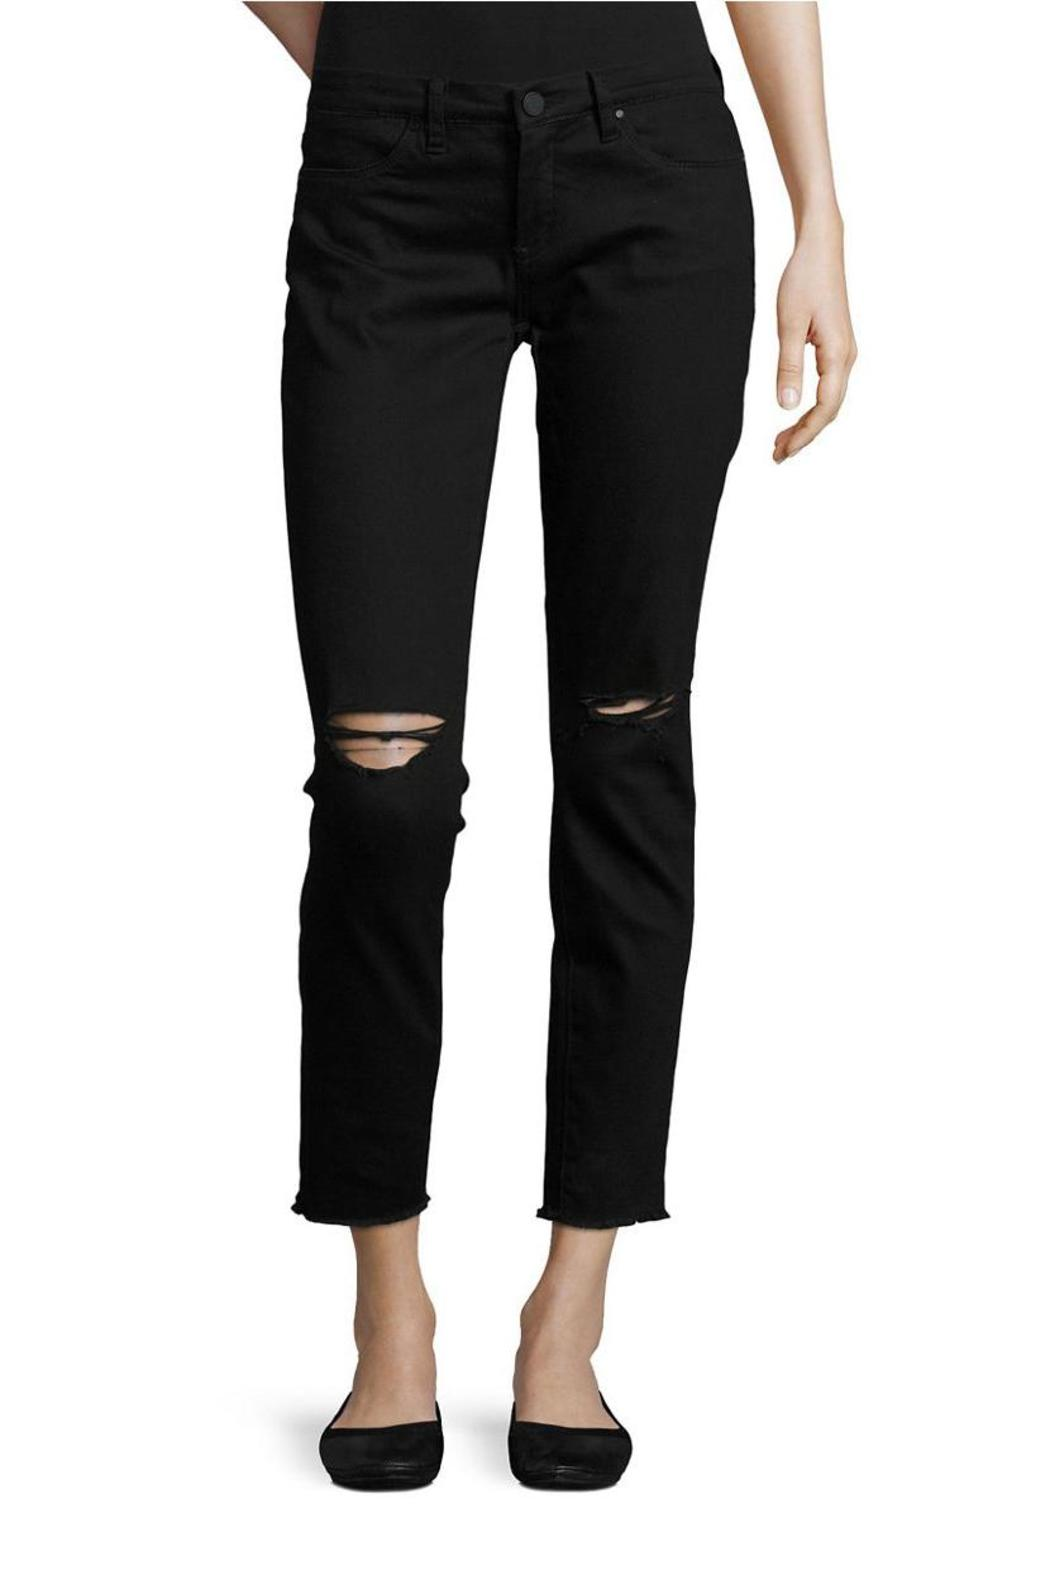 Blank NYC Ripped Skinny Jeans - Main Image